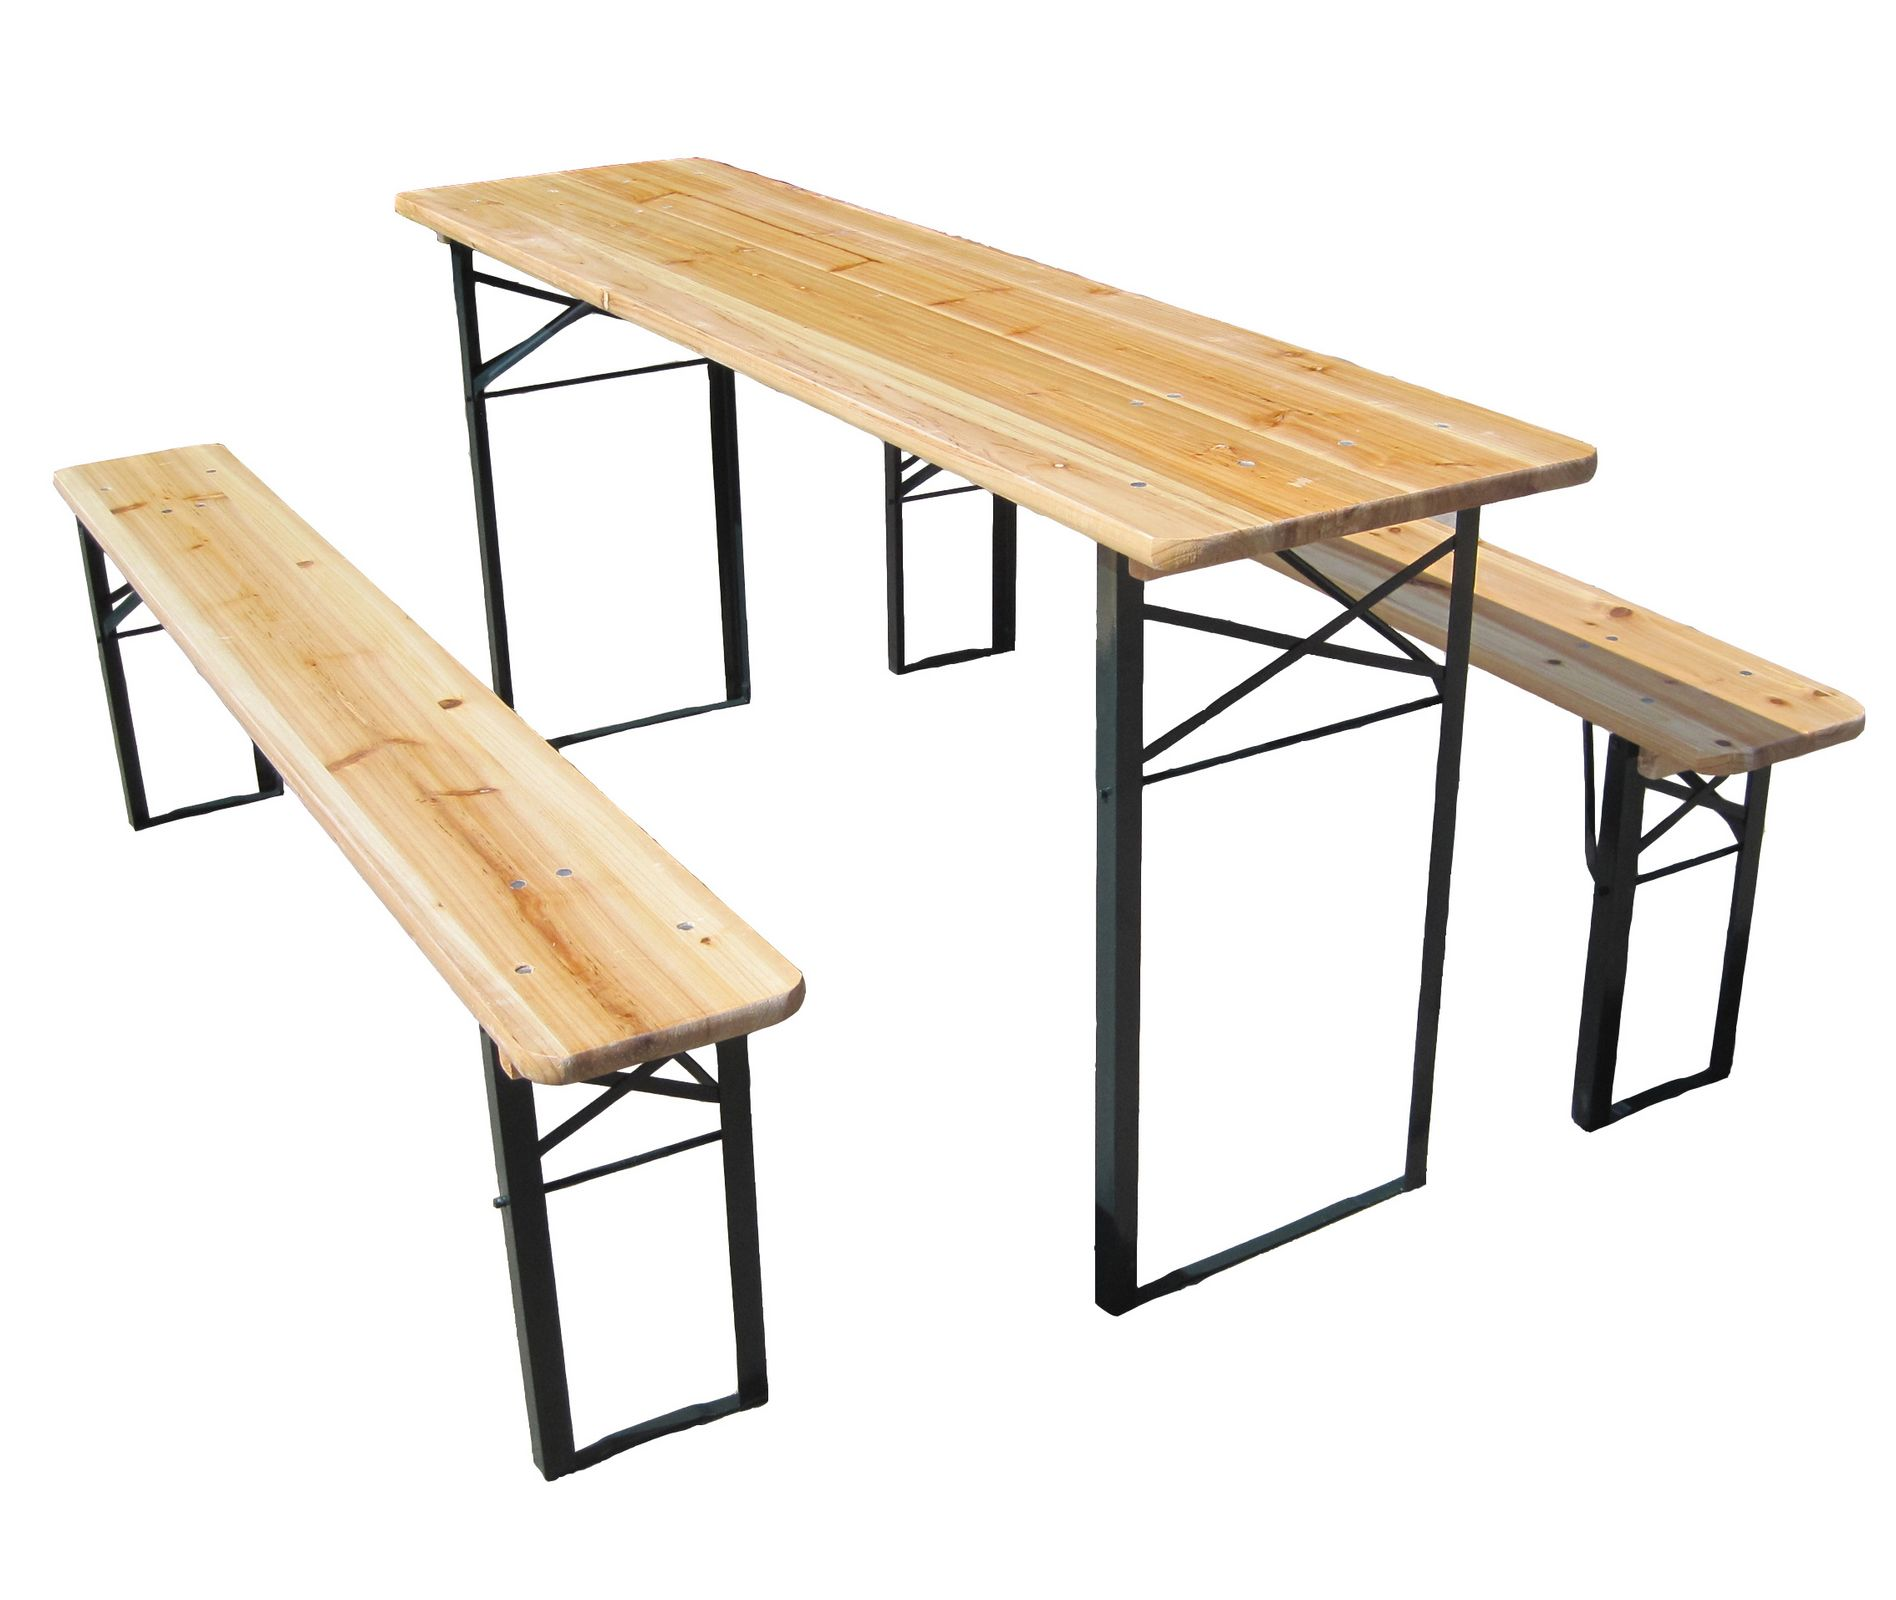 meubles en bois pliable table banc tr teau acier lot f te jardin ebay. Black Bedroom Furniture Sets. Home Design Ideas